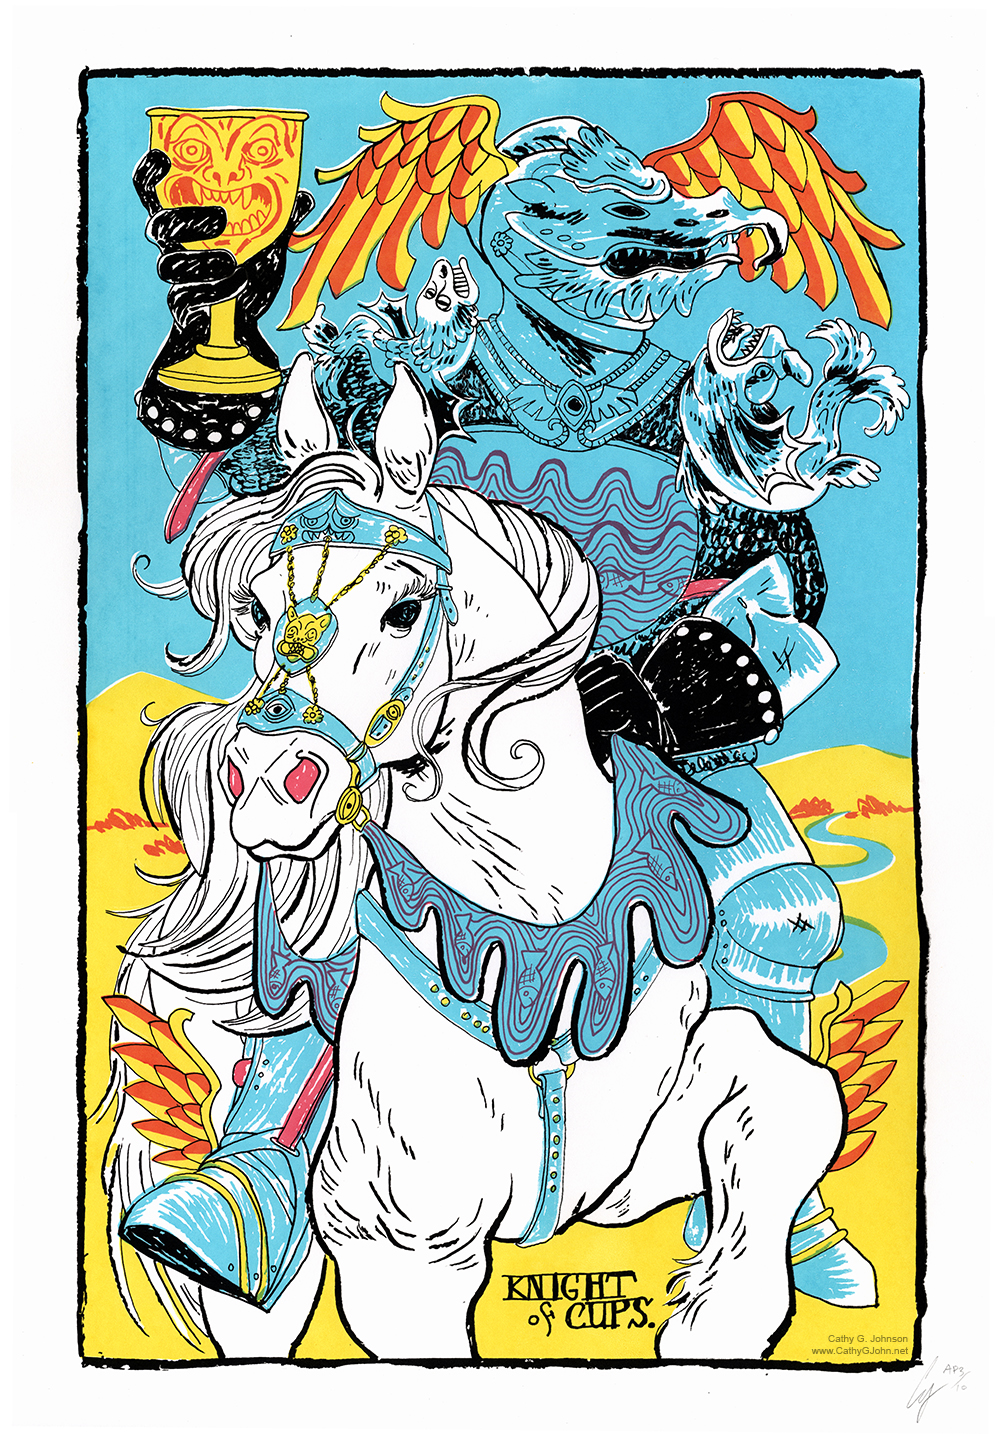 Knight of Cups / Personal Work